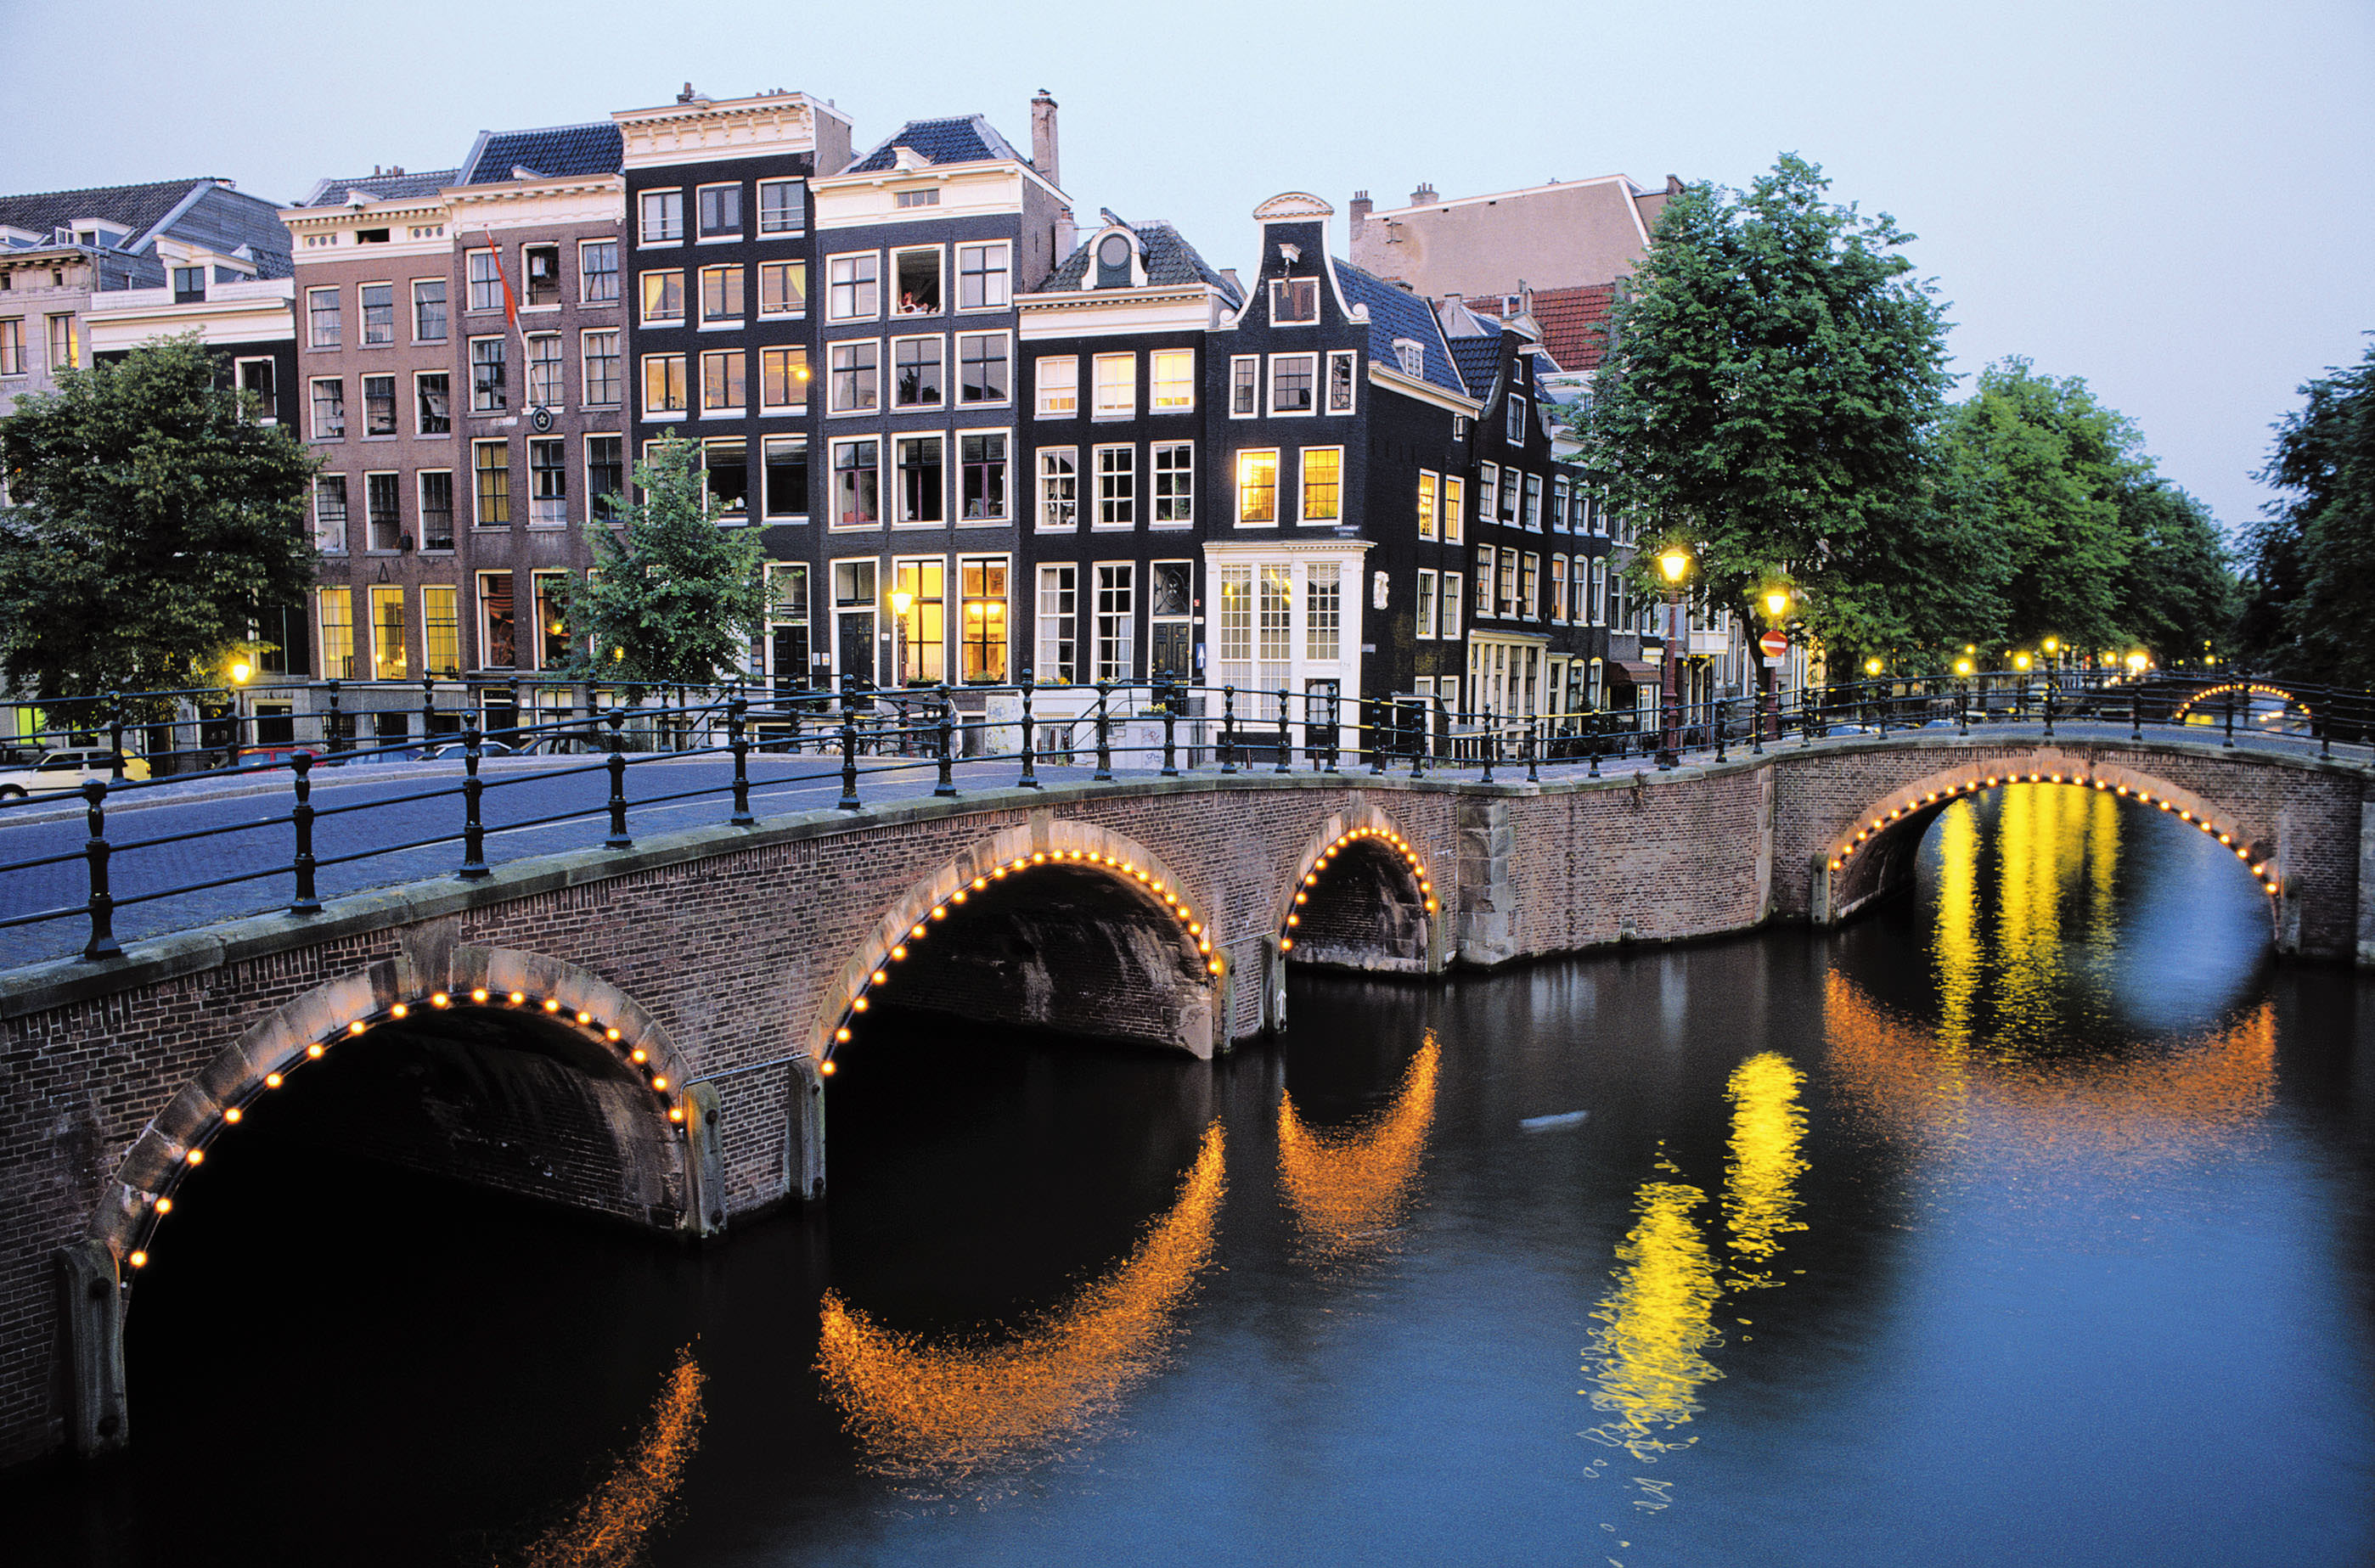 Save £50 on your trip to Amsterdam in 2013